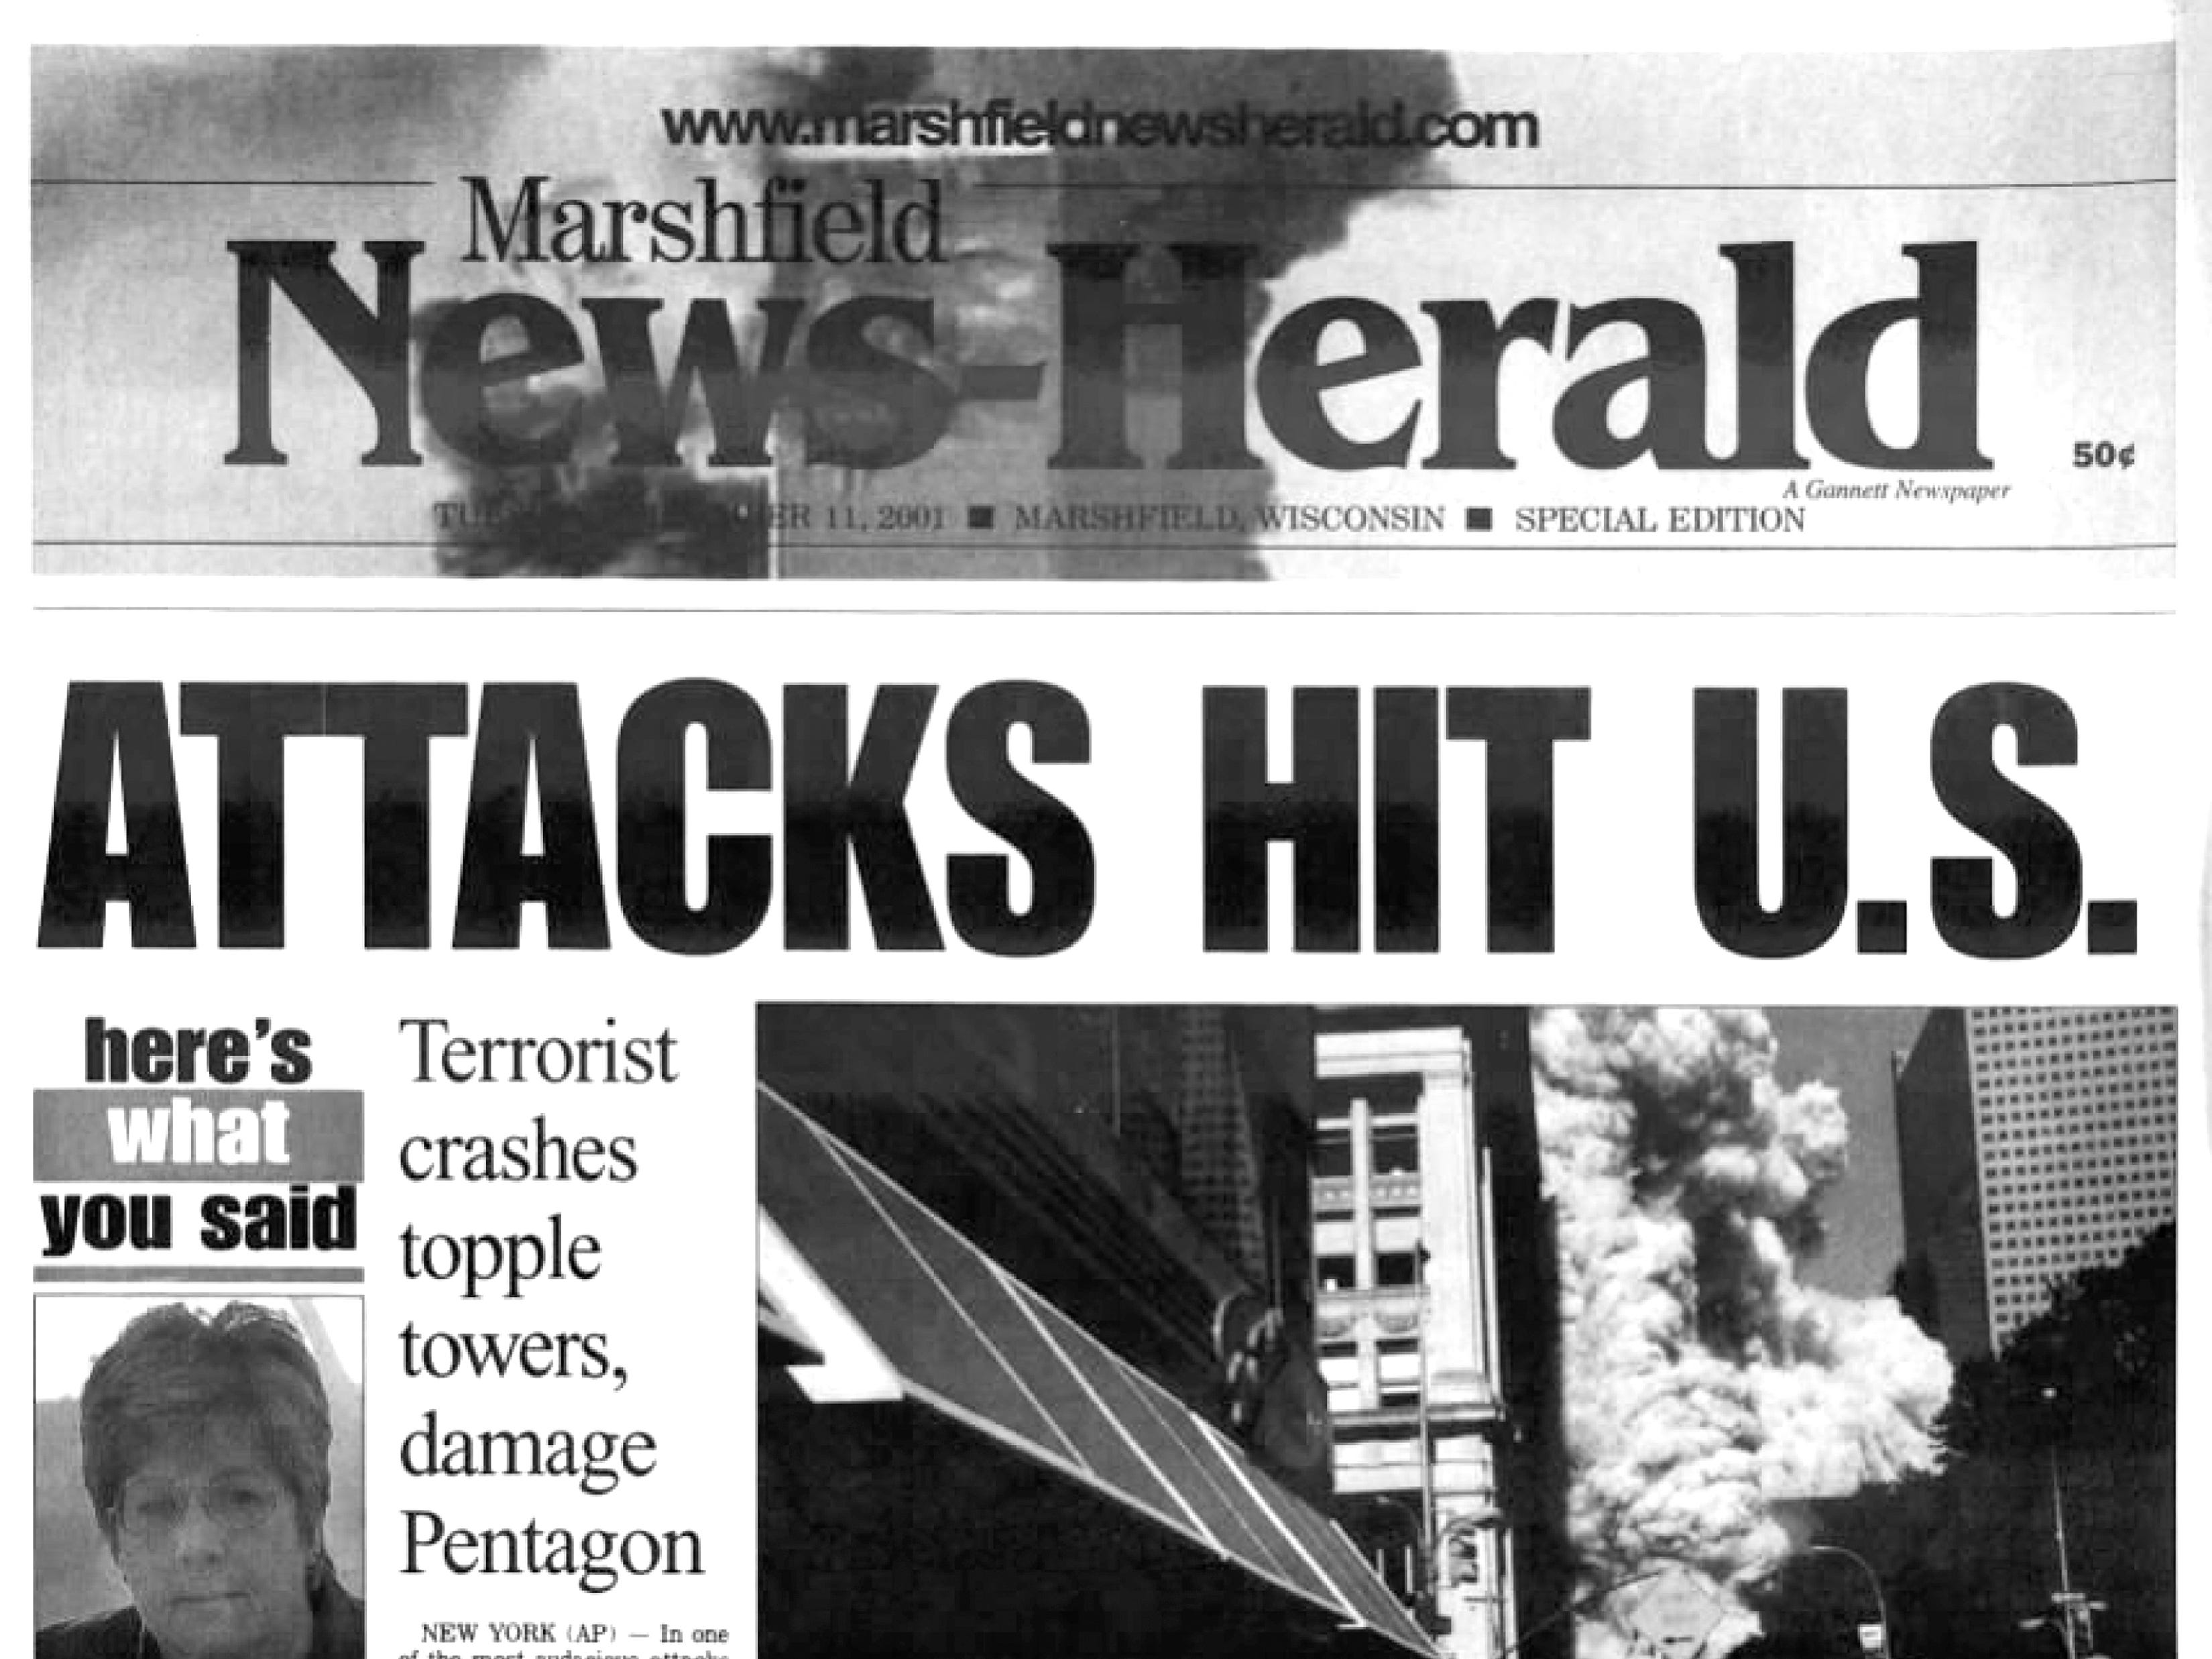 Front page of The Marshfield News-Herald on Sept. 12, 2001